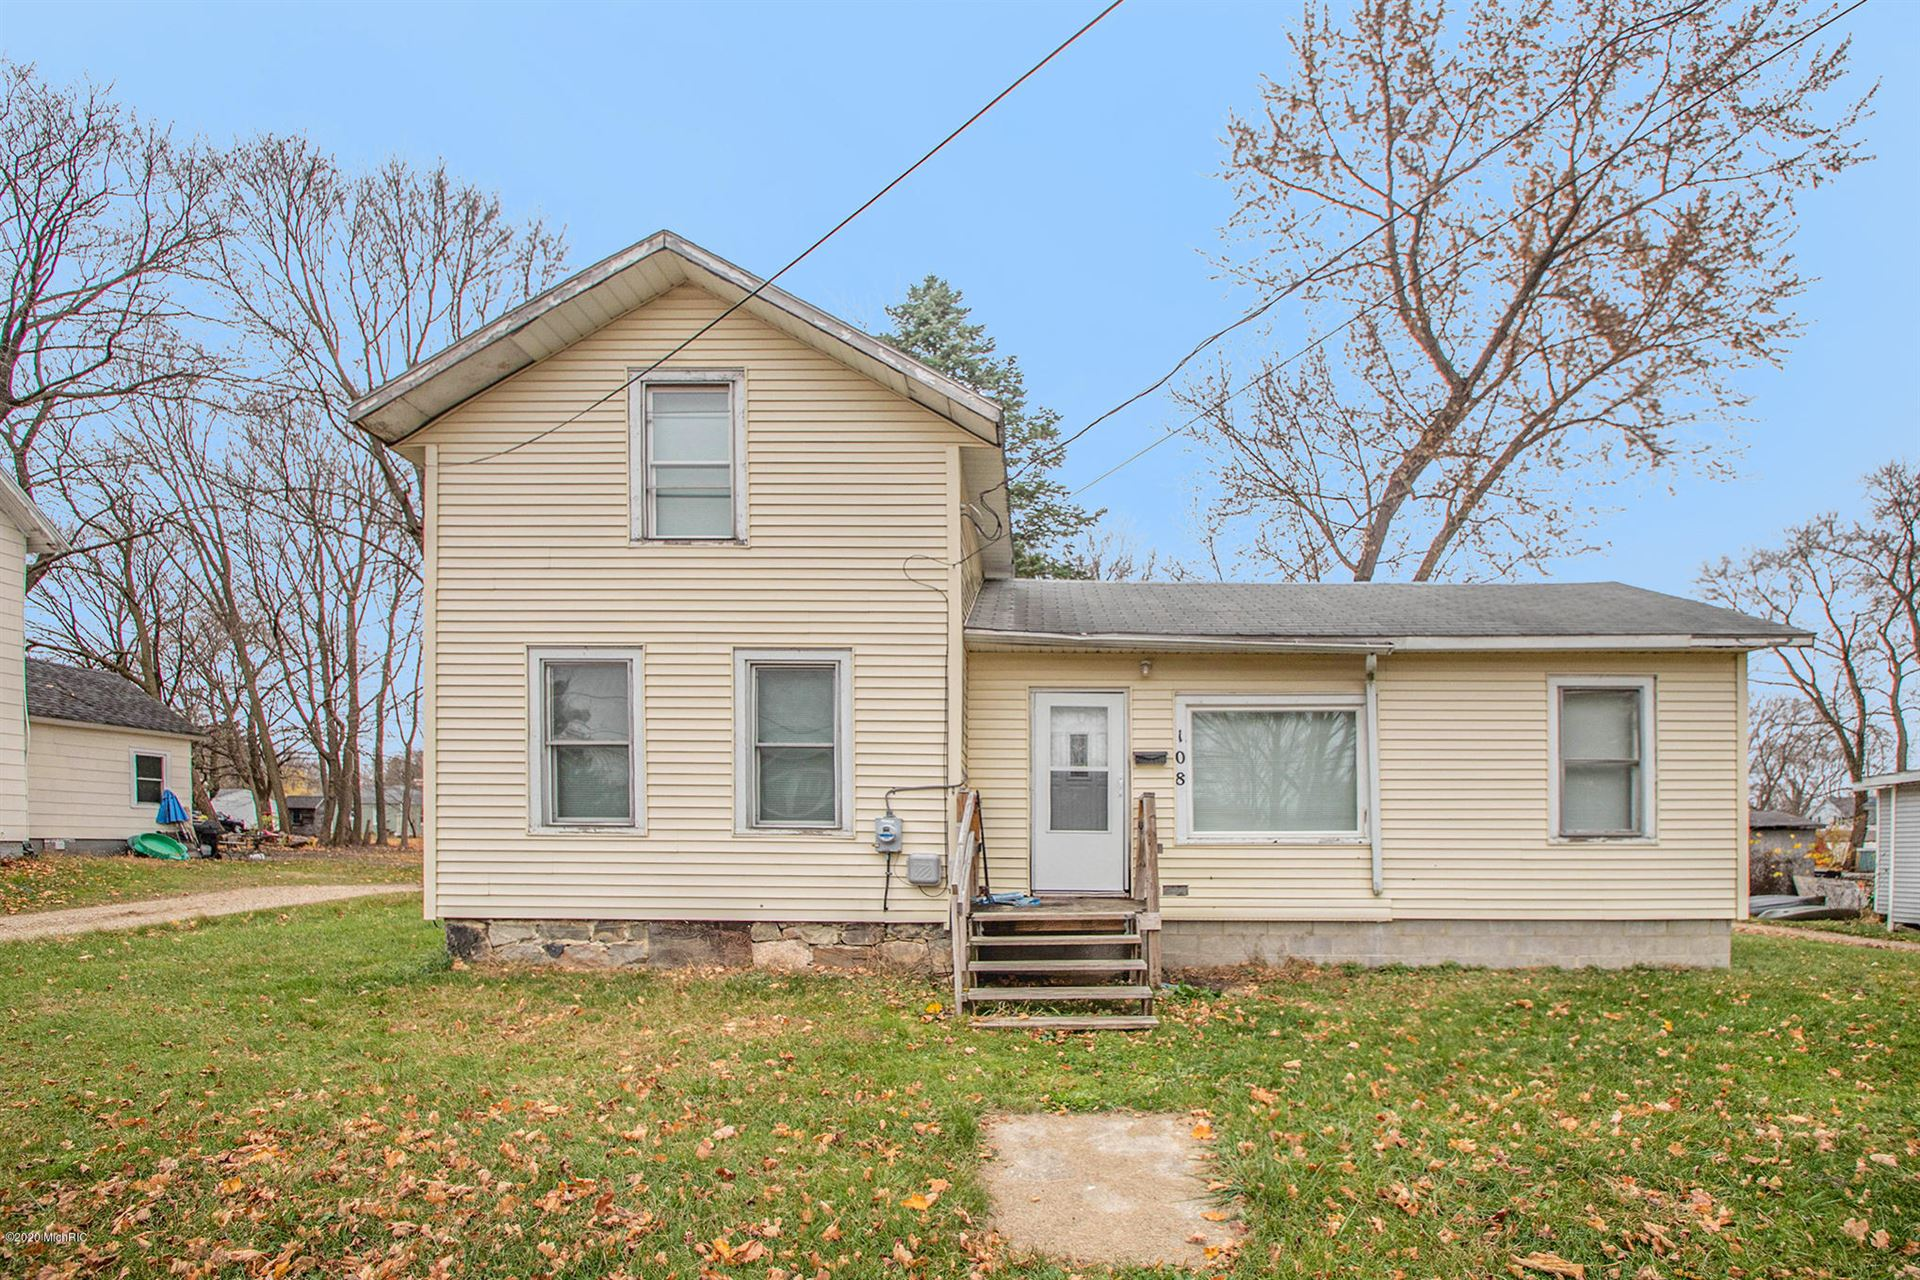 108 W 4th Street, Buchanan, MI 49107 - MLS#: 20047375